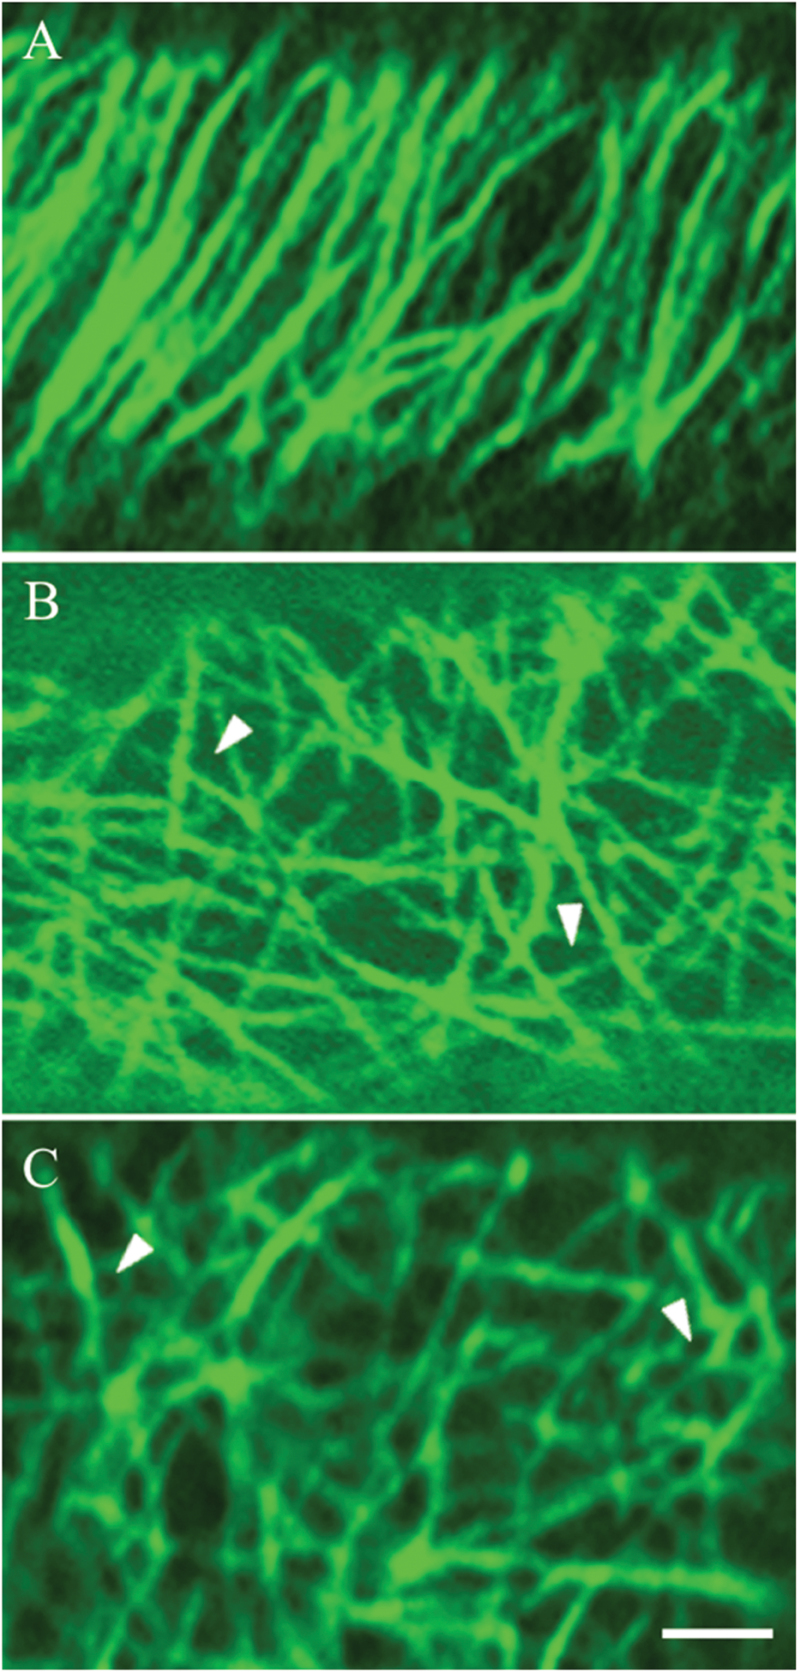 Confocal images of three categories of CMT arrays observed in adaxial epidermal cells of V. faba cotyledons cultured for 24h. CMT arrays immunolabelled with anti-α-tubulin and IgG–Alexa Fluor 488 conjugate. (A) 'Organized': parallel arrays of thick CMT bundles. (B) 'Randomized': an array defined by thick, strongly labelled CMT bundles arranged in a random network with distinctive polygonal gaps (arrowheads) in the network. (C) 'Randomized with depletion zones': an array composed of circular depletion zones surrounded by a possible combination of fine fragmented CMTs and tubulin monomers sometimes appearing like a collar (arrowheads). Bar, 2.5 μm.